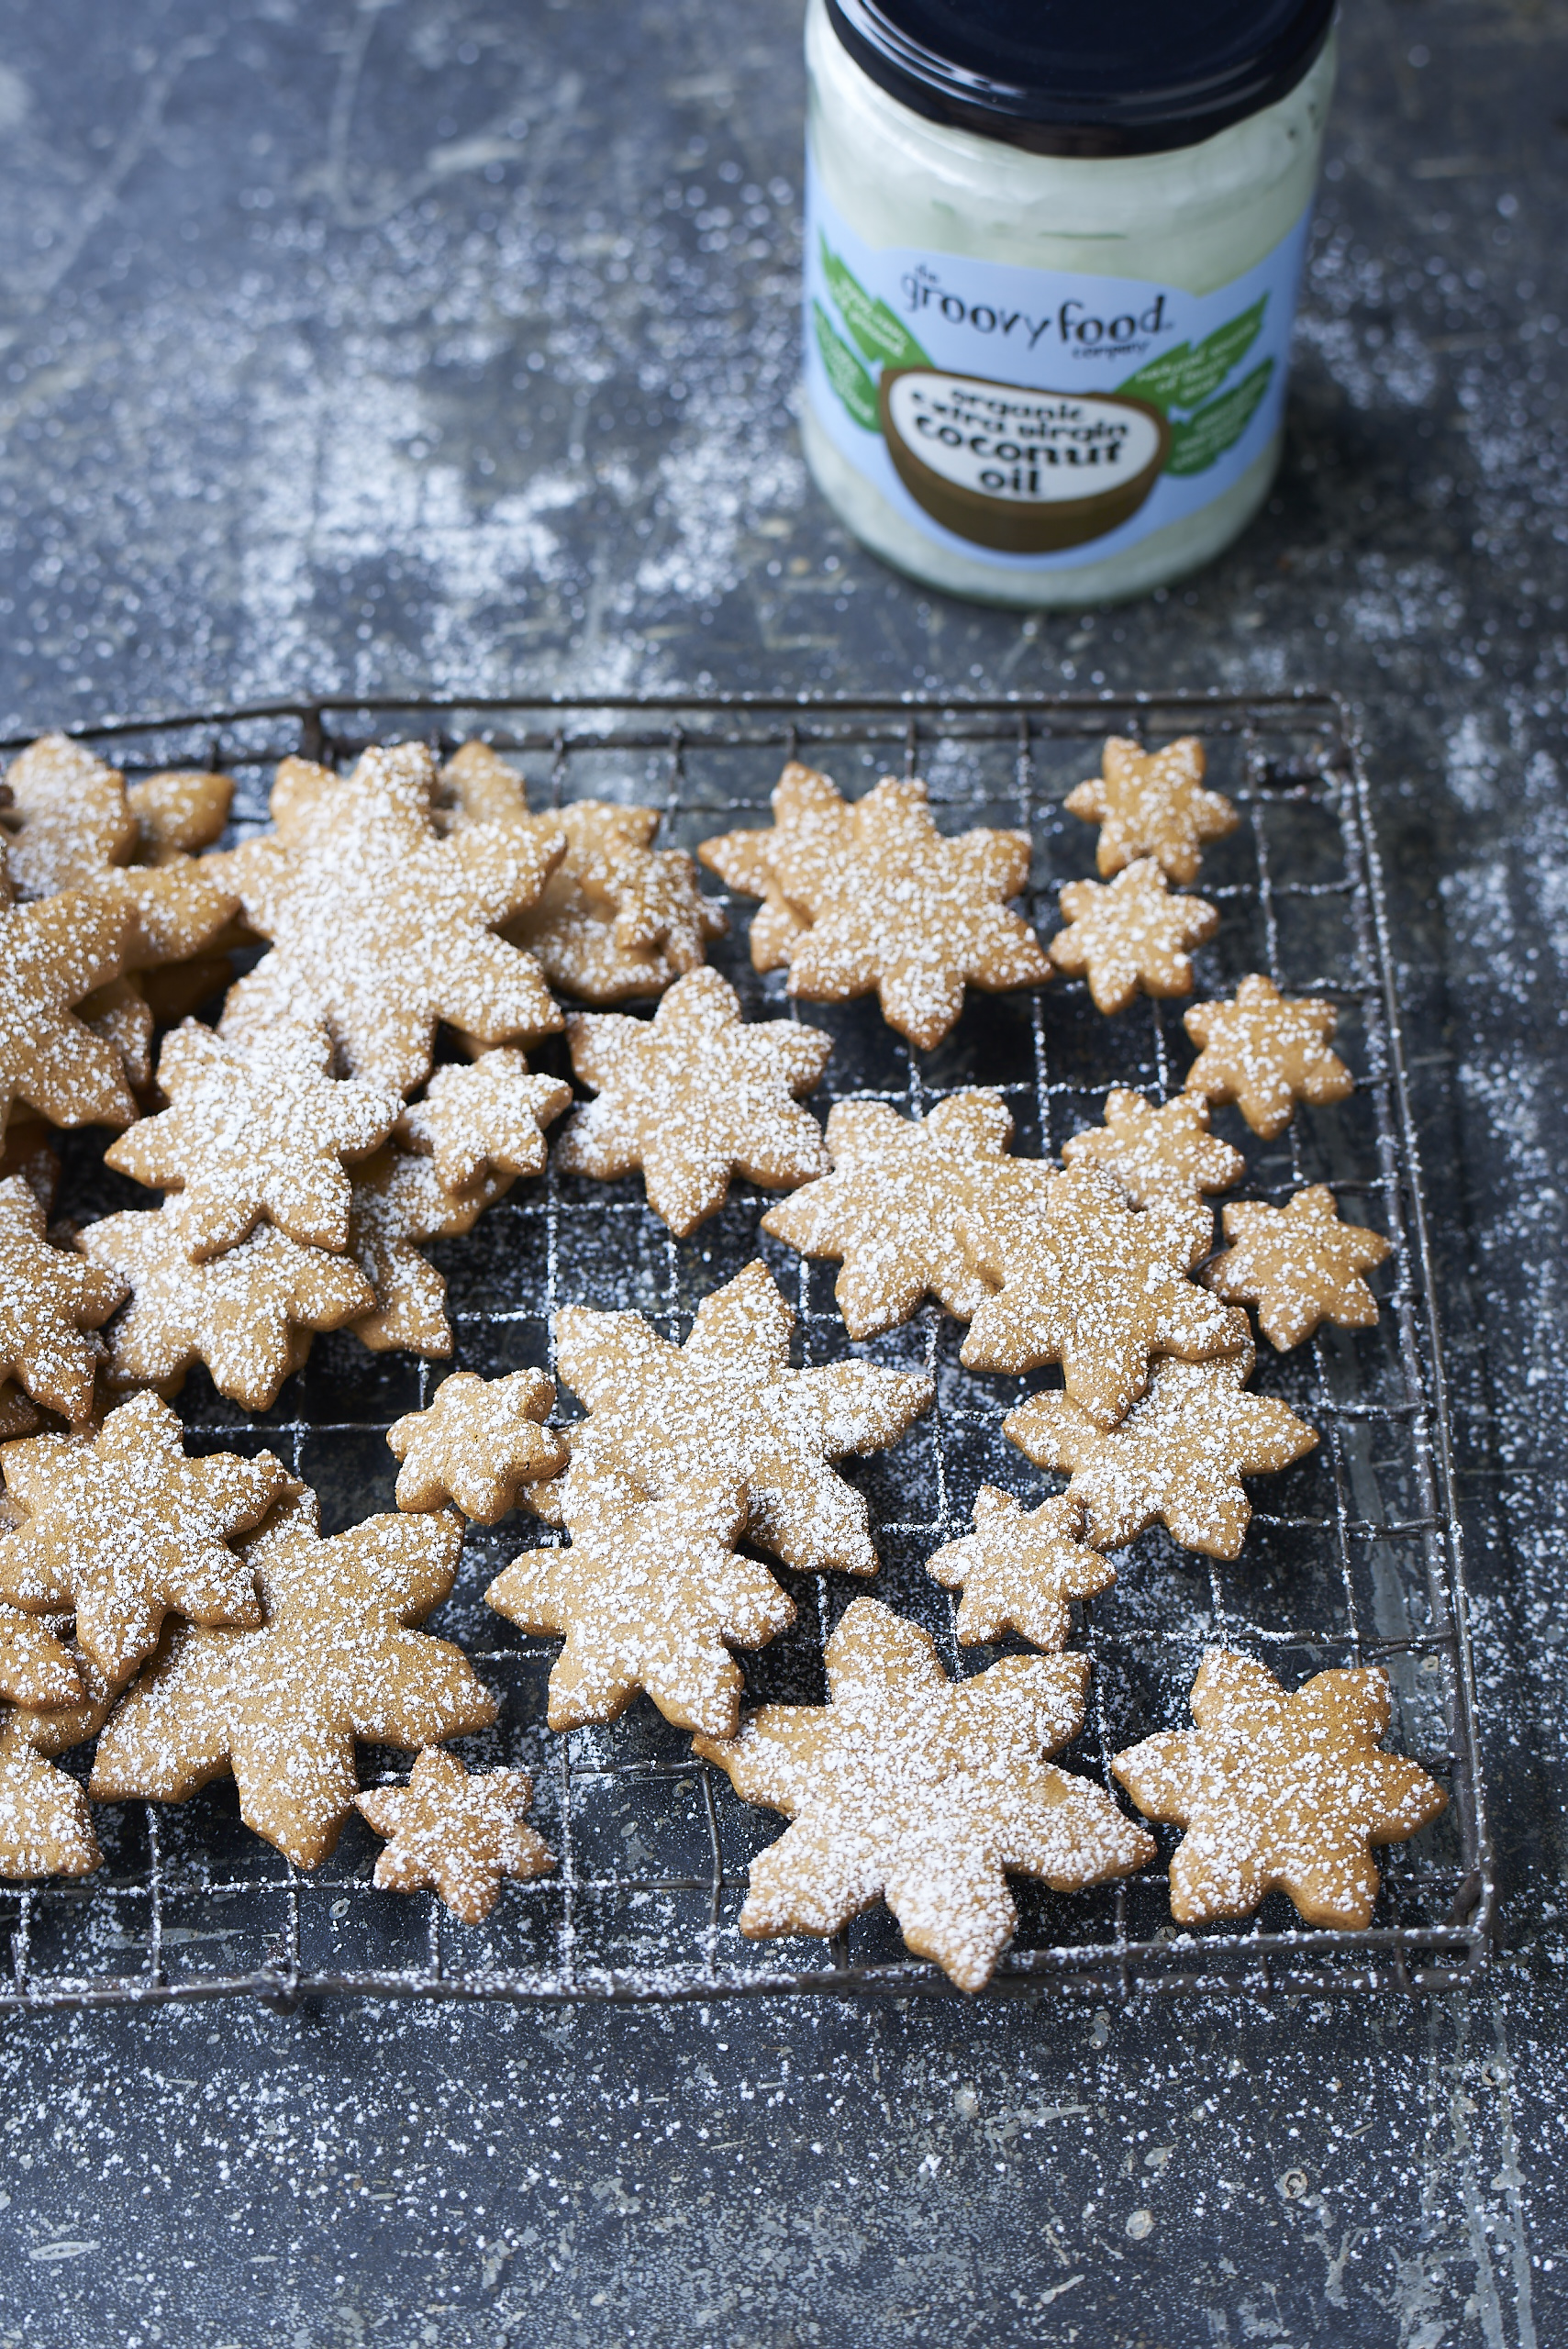 Groovy_Ginger_Biscuits13262